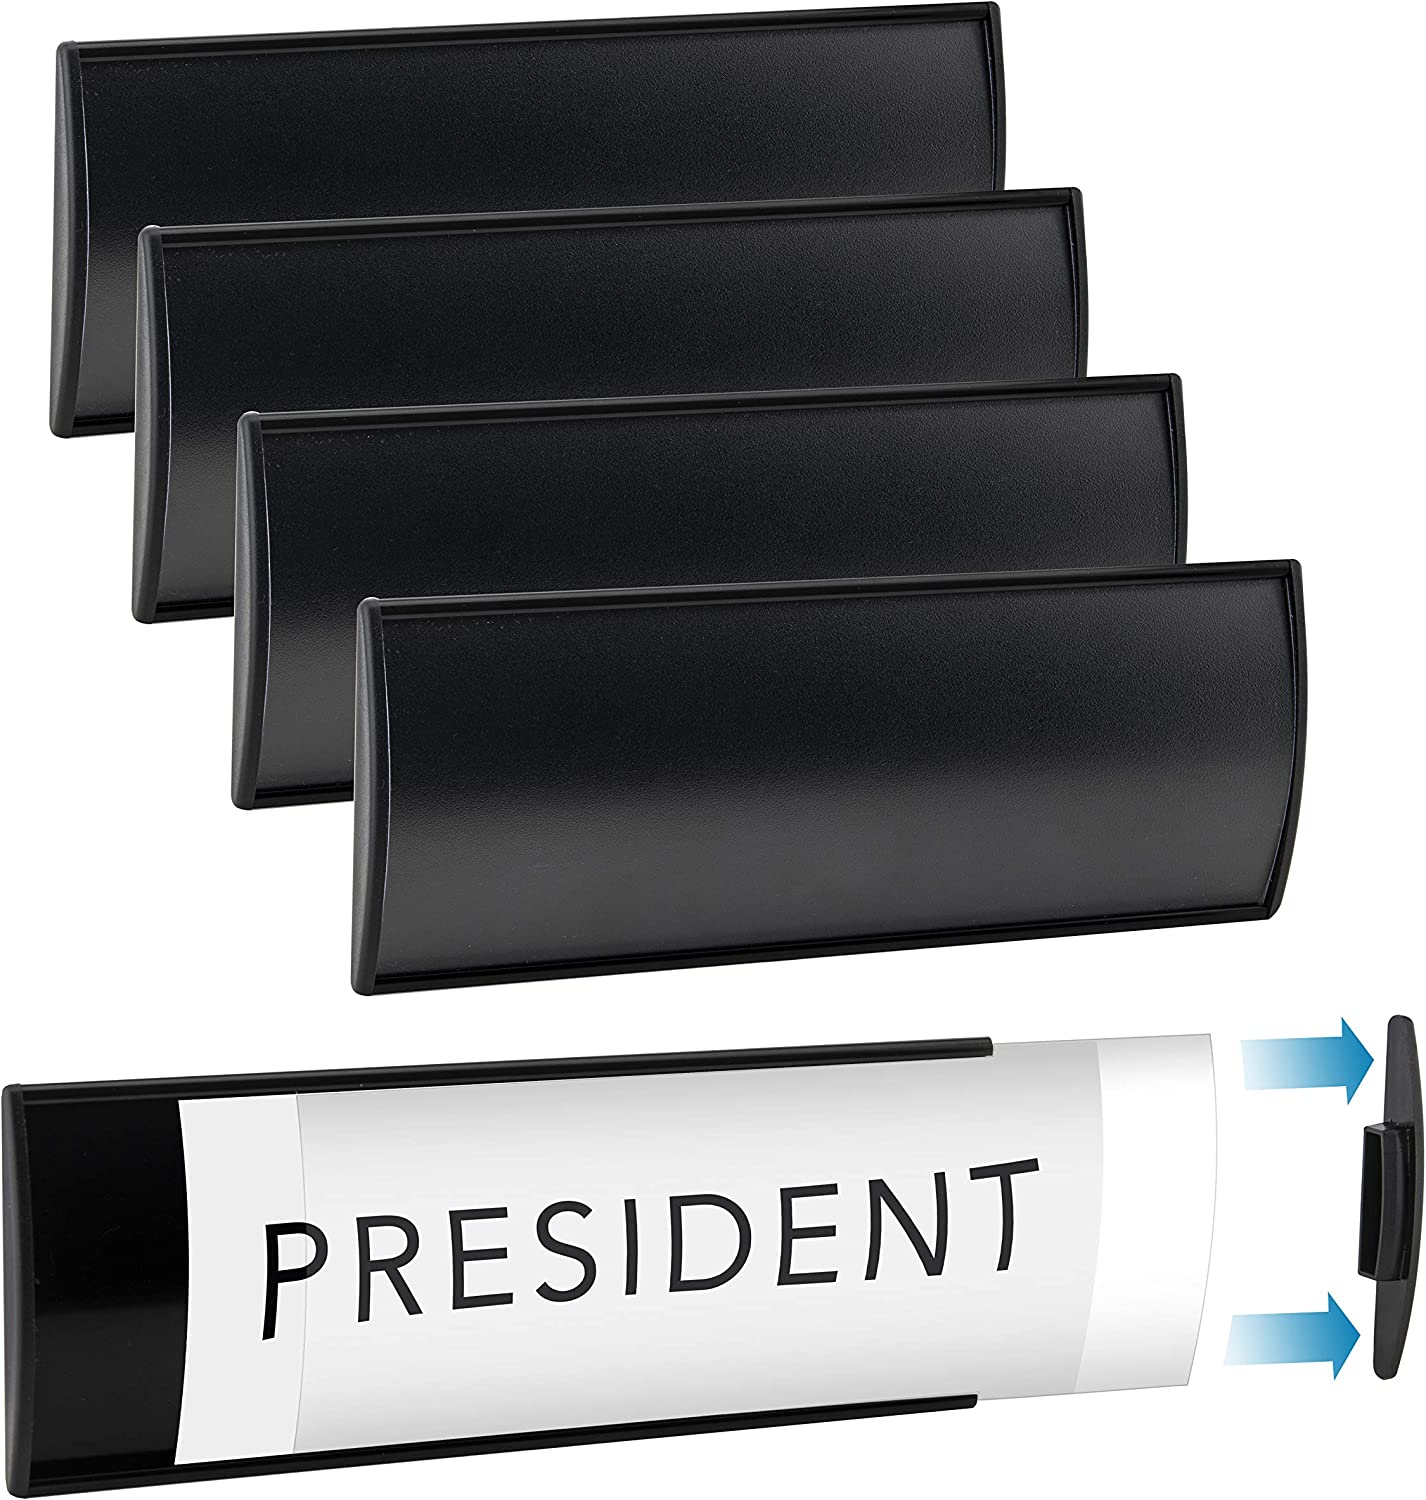 "Set of 6 – Sturdy and Elegant Black Aluminum Wall Mount Name Plate Holder, Curved Office Business Door Sign Holders with Adhesive Tape, 8"" X 3"" - Plastic Film Included, Paper Inserts NOT Included"